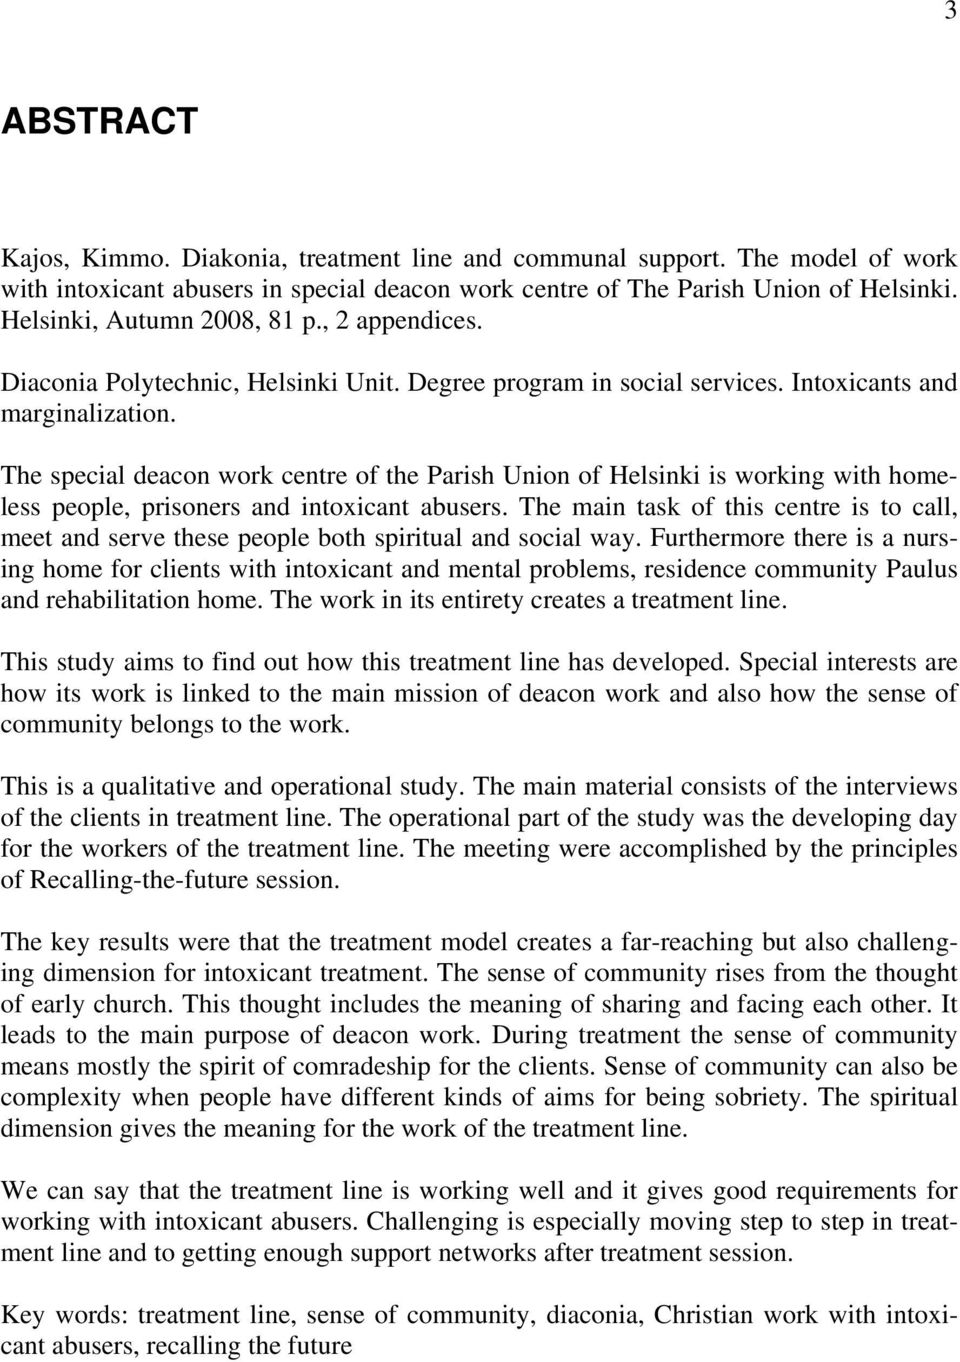 The special deacon work centre of the Parish Union of Helsinki is working with homeless people, prisoners and intoxicant abusers.